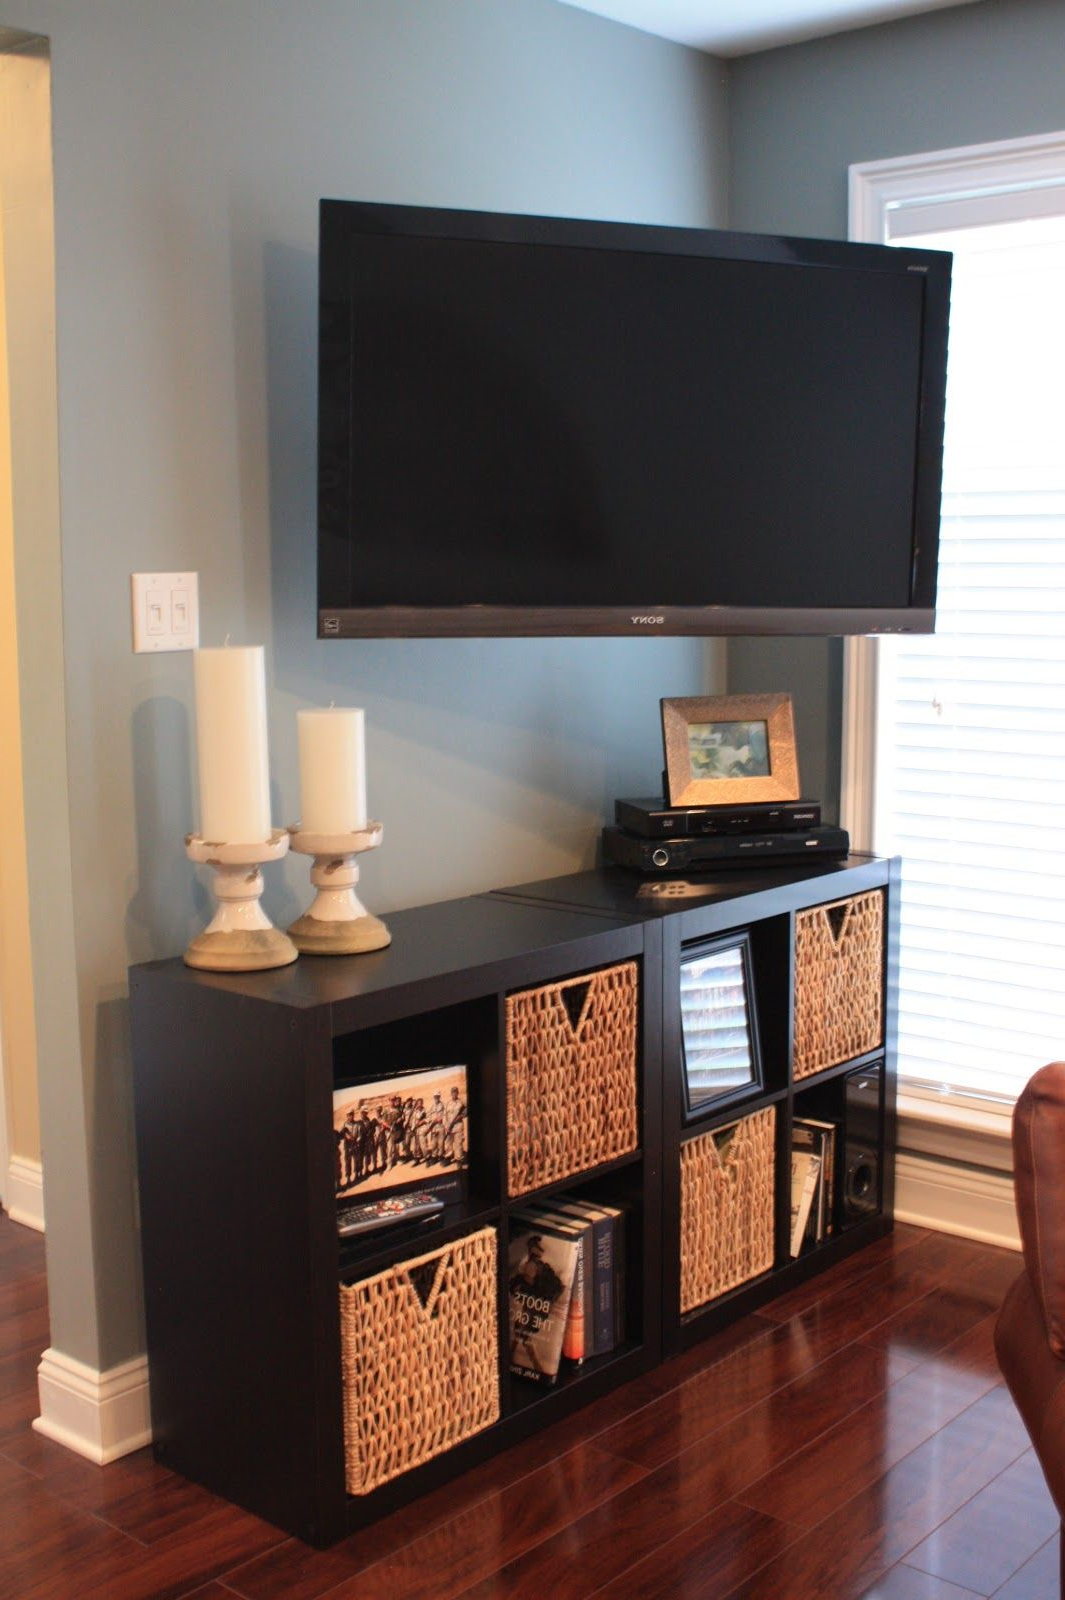 Popular Diy Tv Stand Plans Panel Designs For Living Room Ideas Small Spaces Regarding Tv Stands For Small Spaces (View 11 of 20)